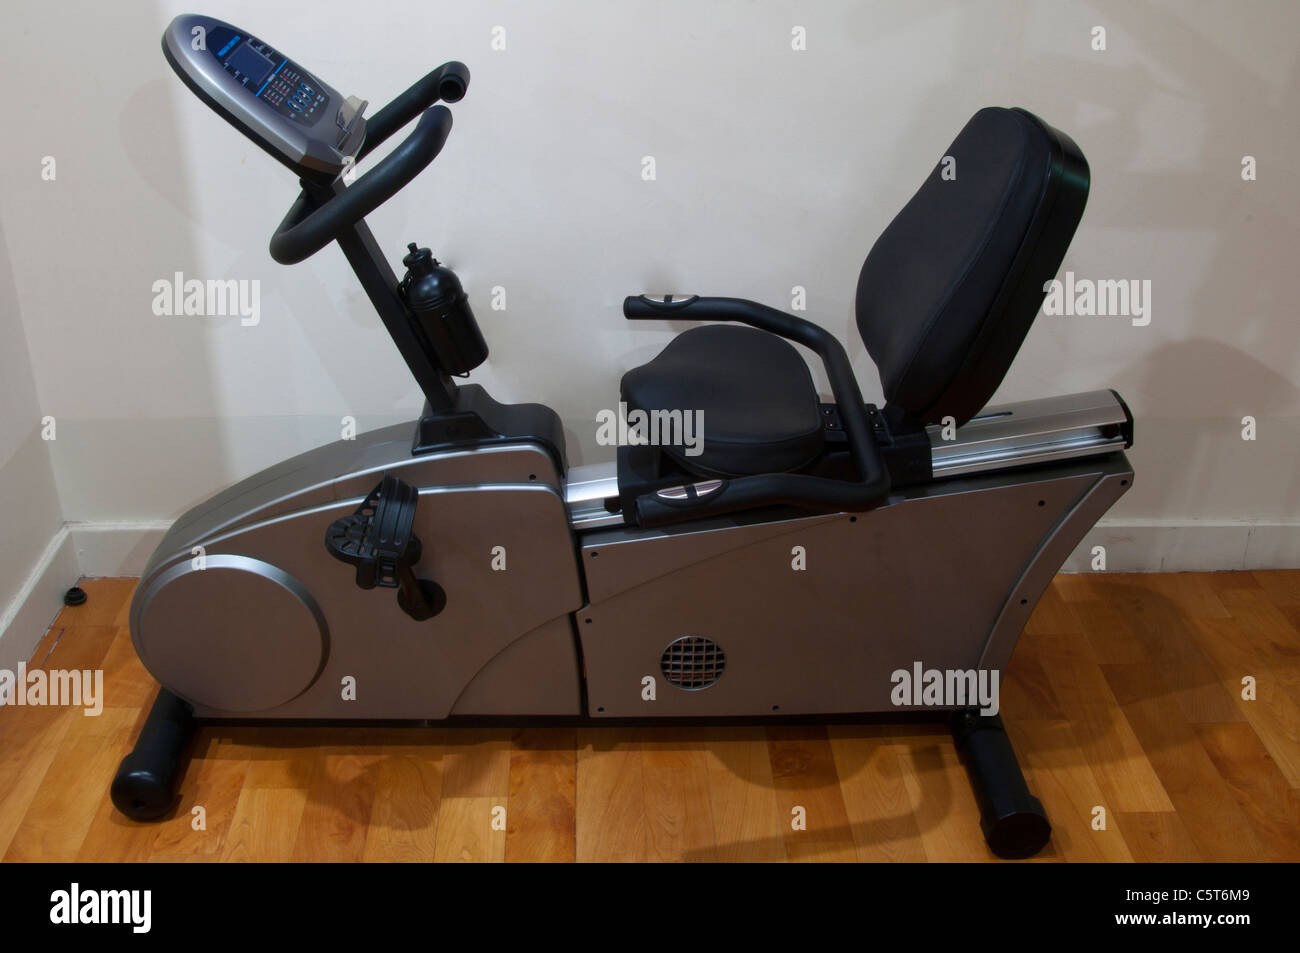 Exercise cycling bike machine in a gym - Stock Image